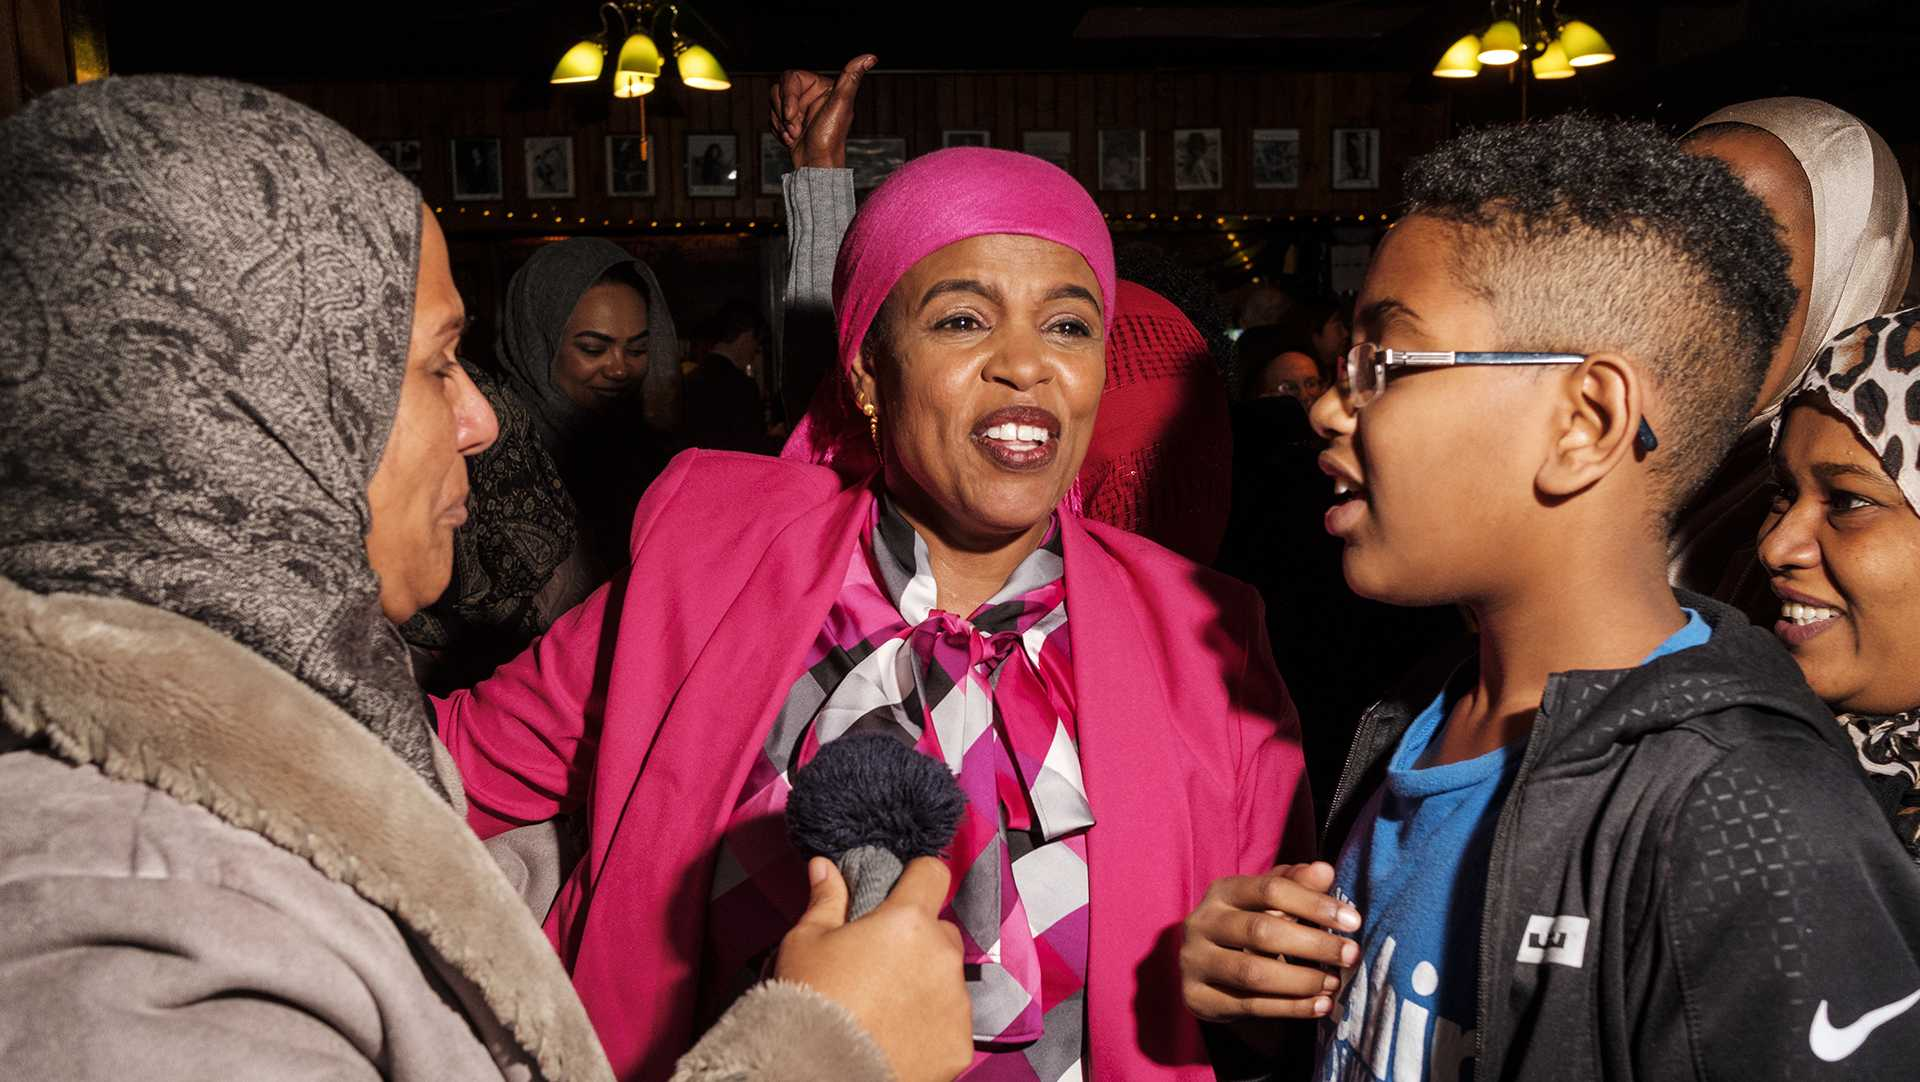 Mazahir Salih is congratulated by suporters and family members after election results were announced at the Mill in Iowa City on Tuesday, Nov. 7, 2017. Salih won an at large seat on the Iowa City city council along with incumbent Kingsley Botchway. (Nick Rohlman/The Daily Iowan)